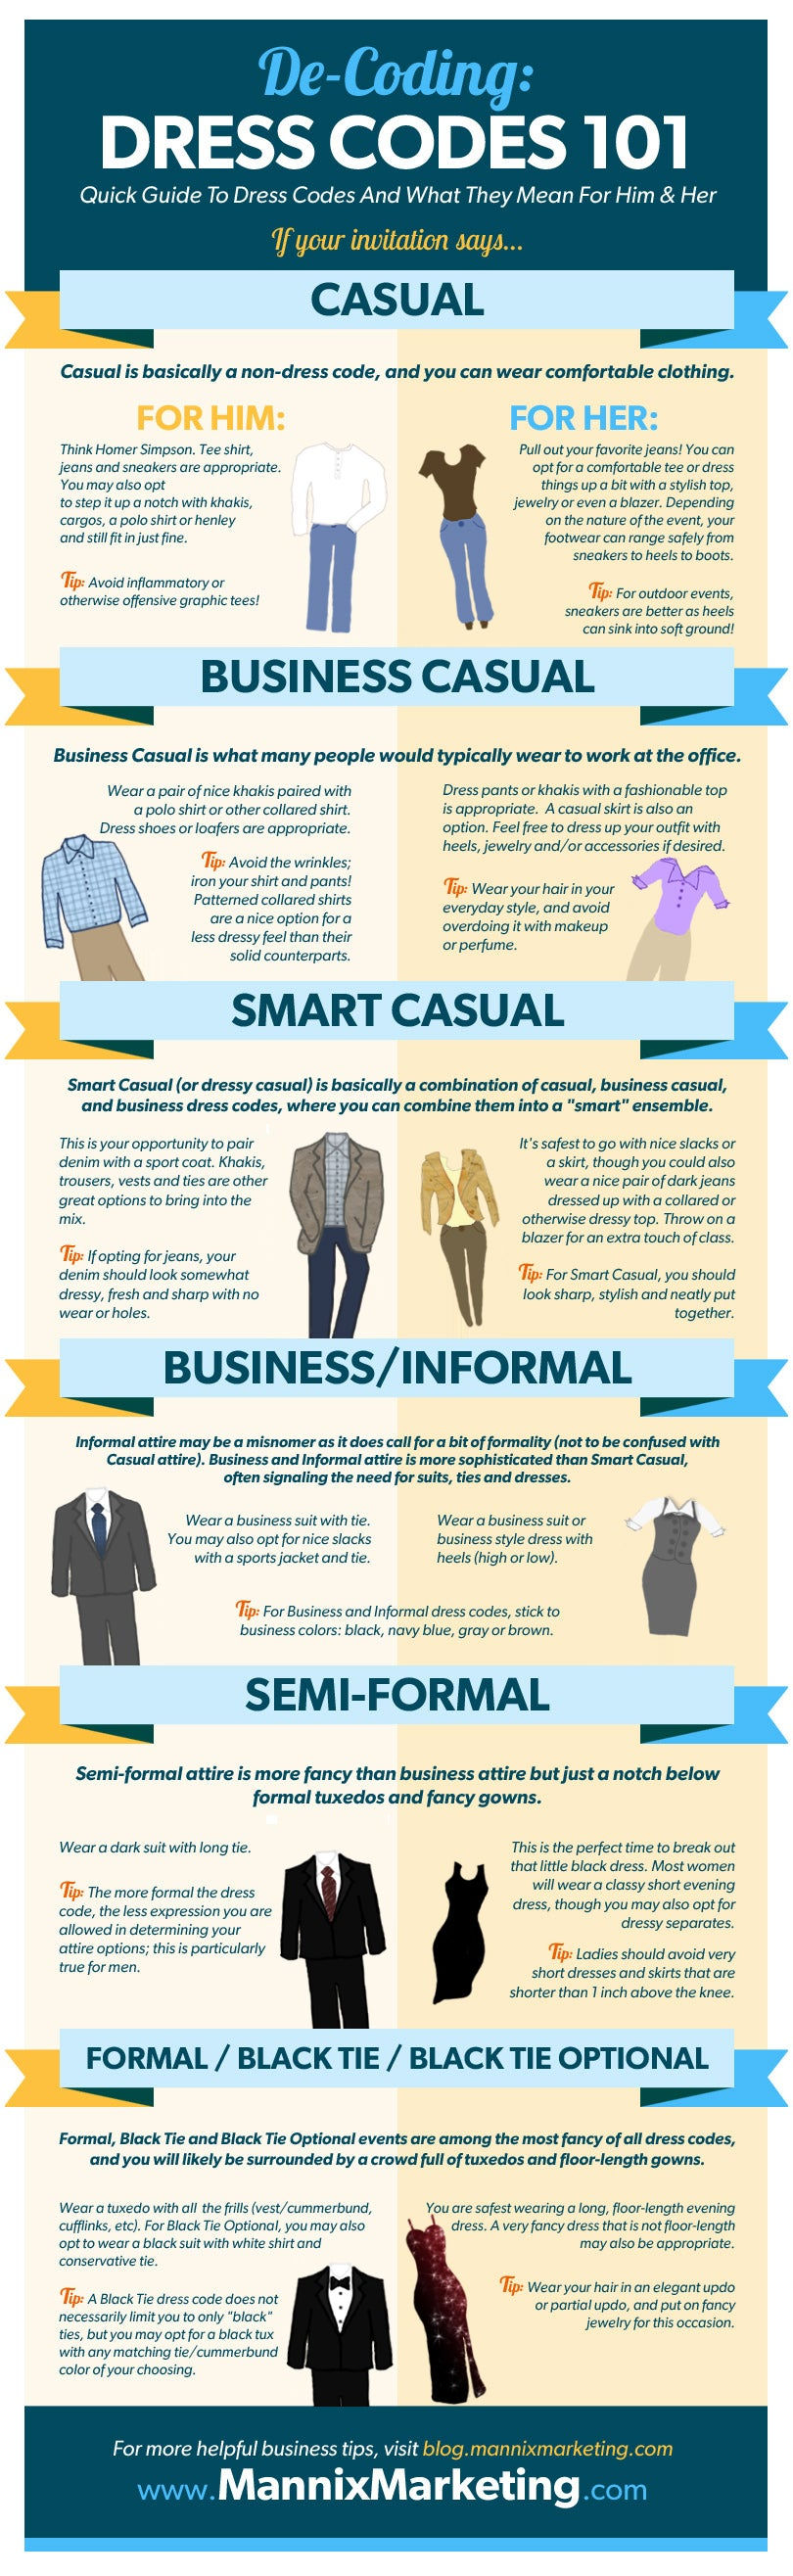 What's the Difference Between Business Casual and Smart Casual? A ...